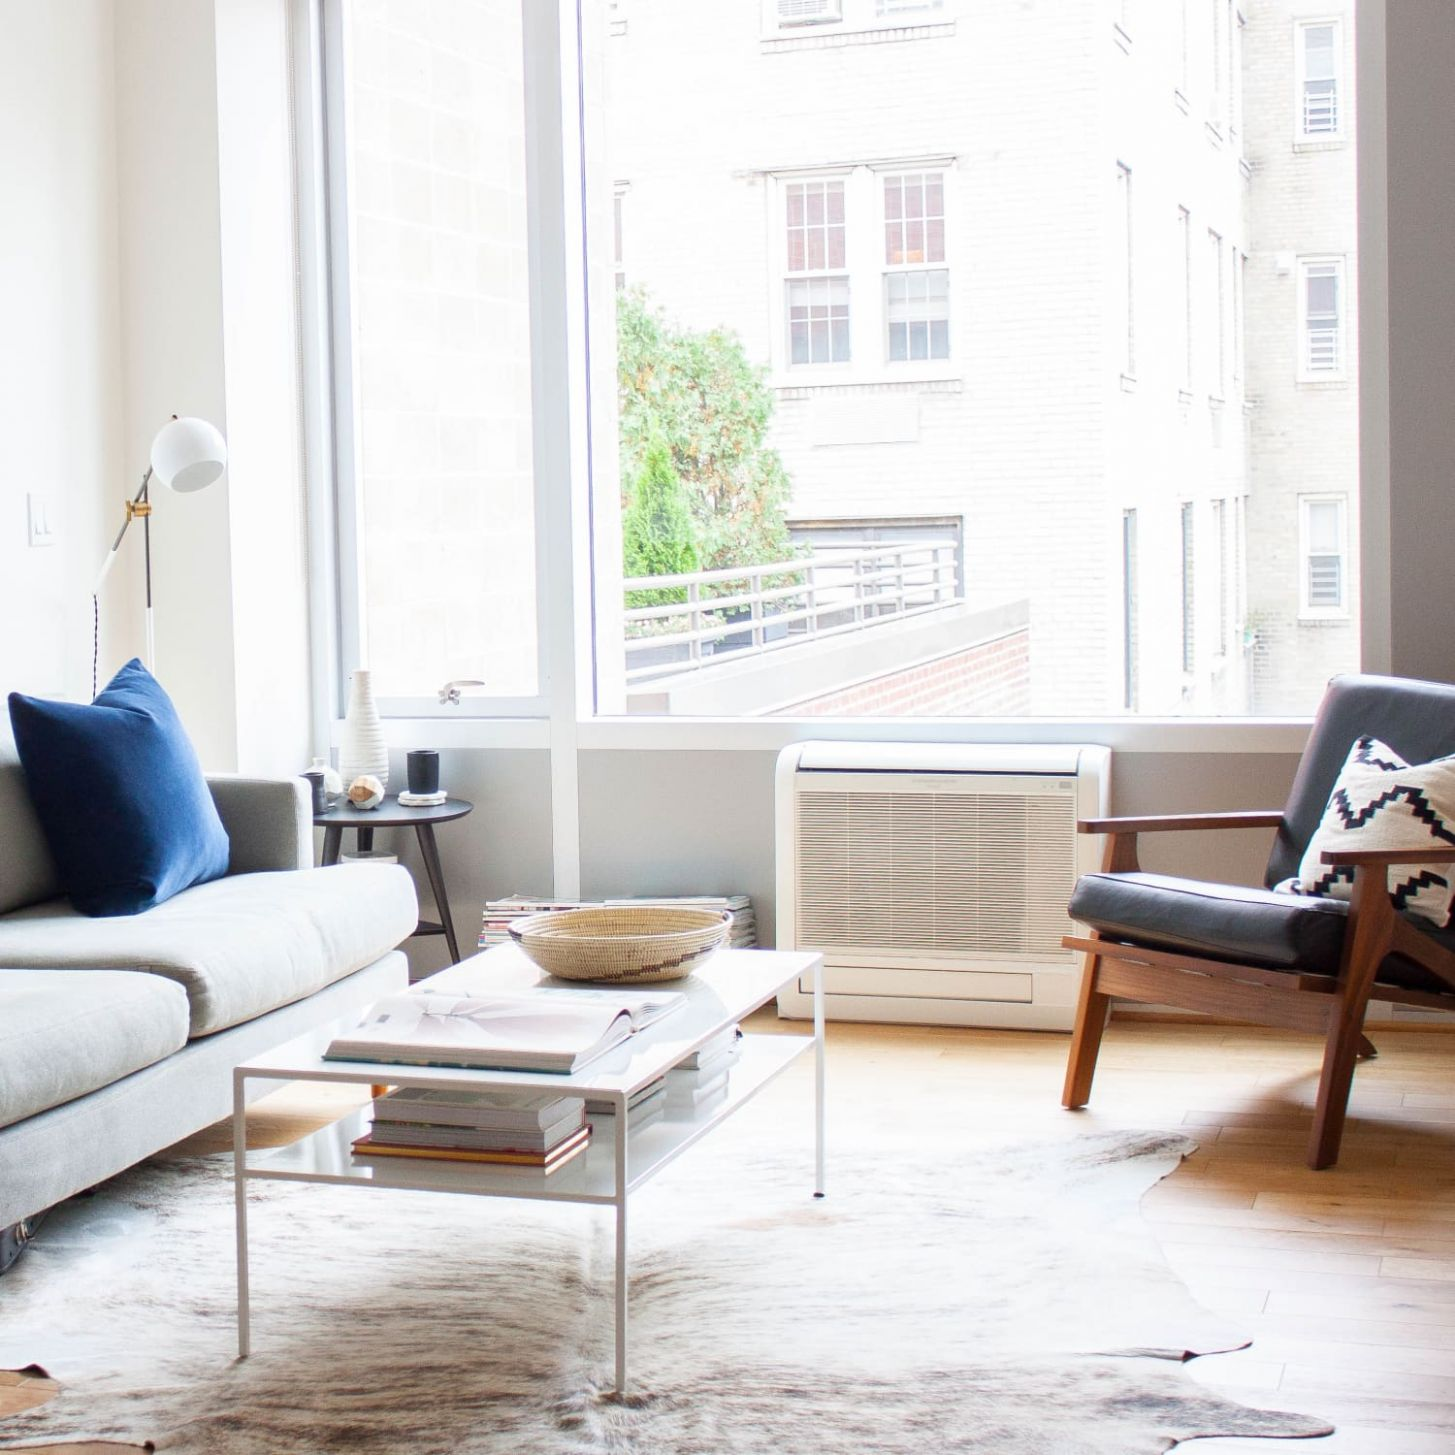 8 Small Living Room Decorating & Design Ideas - How to Decorate a ...